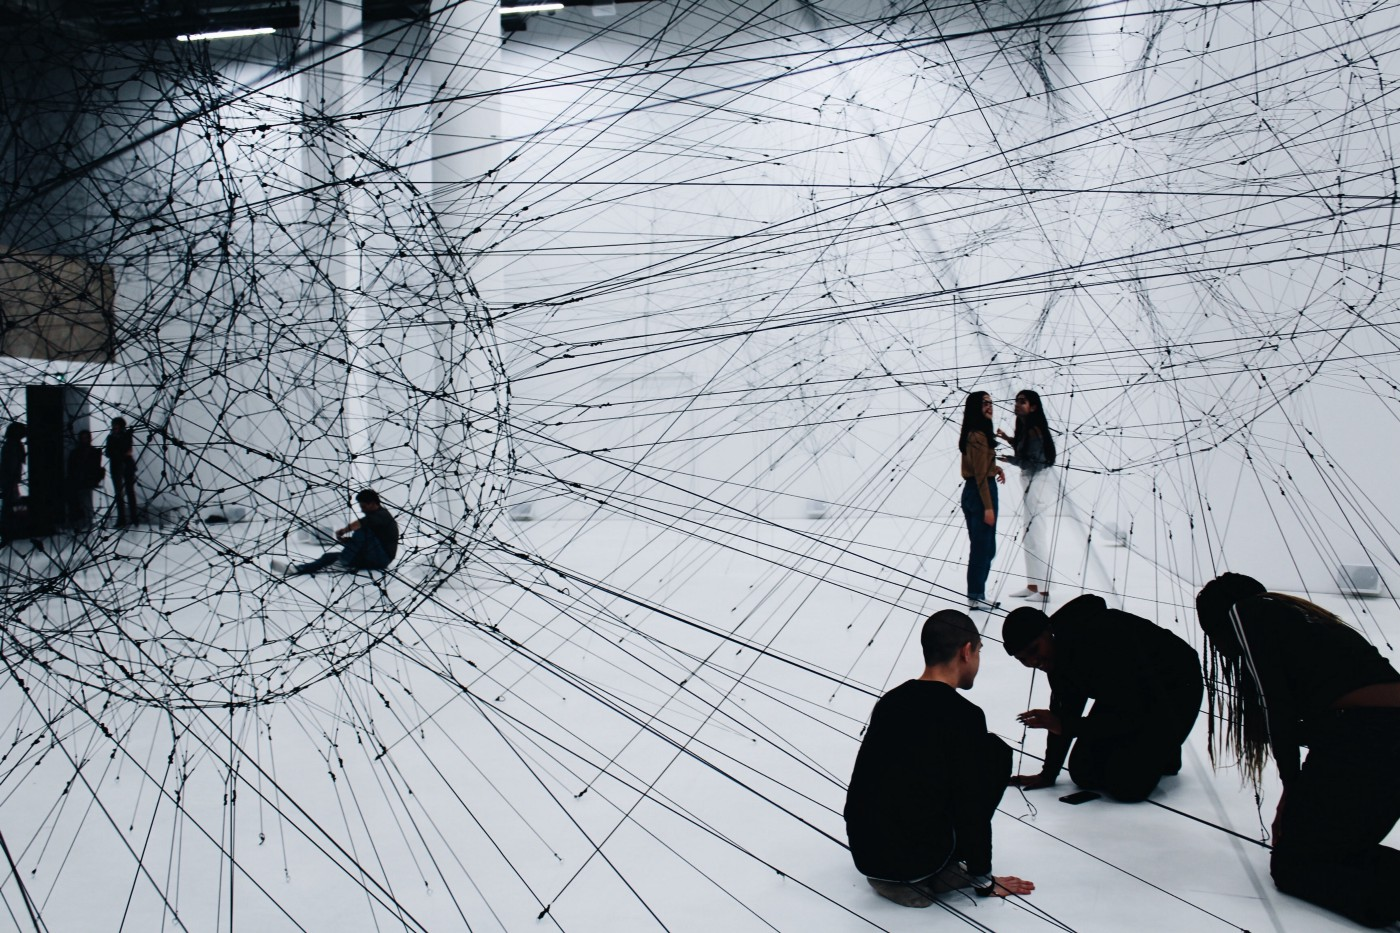 An image of a group of people working on the floor, with an overlaid image of circles and lines representing a network.